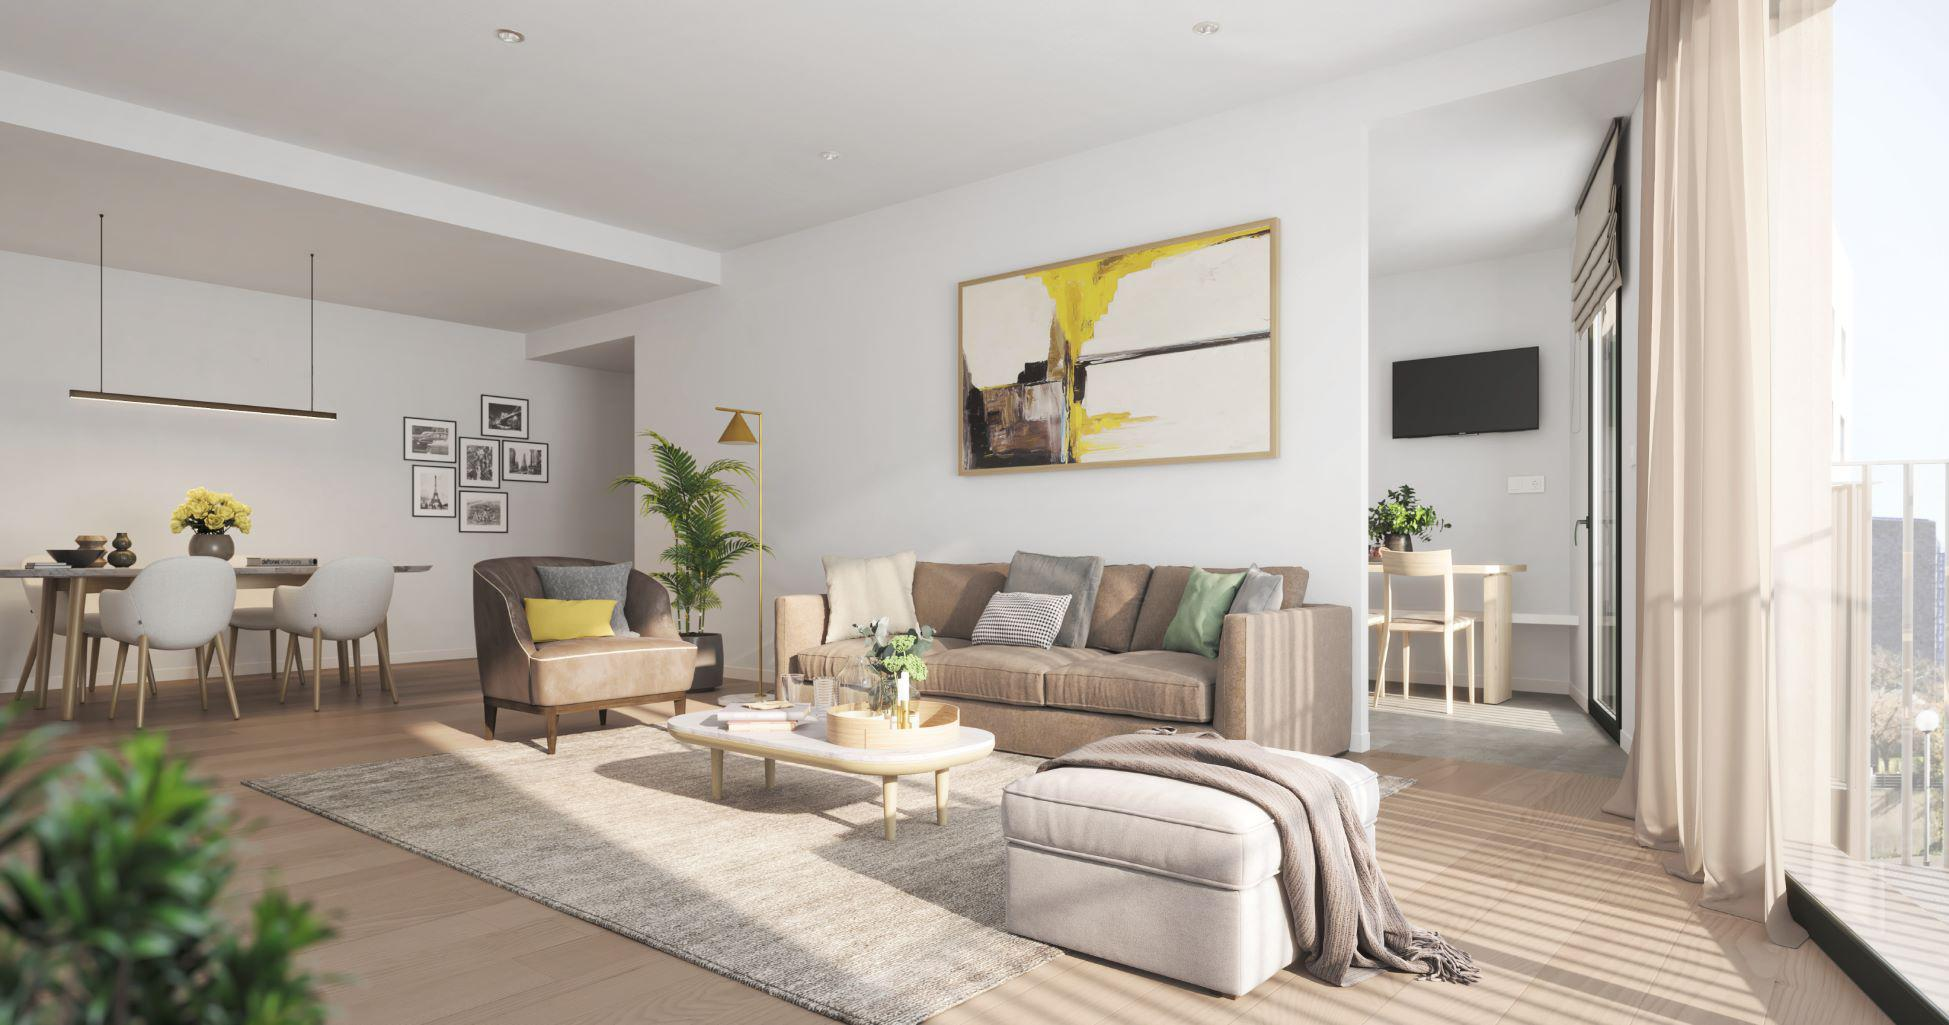 247289 Flat for sale in Les Corts, Les Corts 2